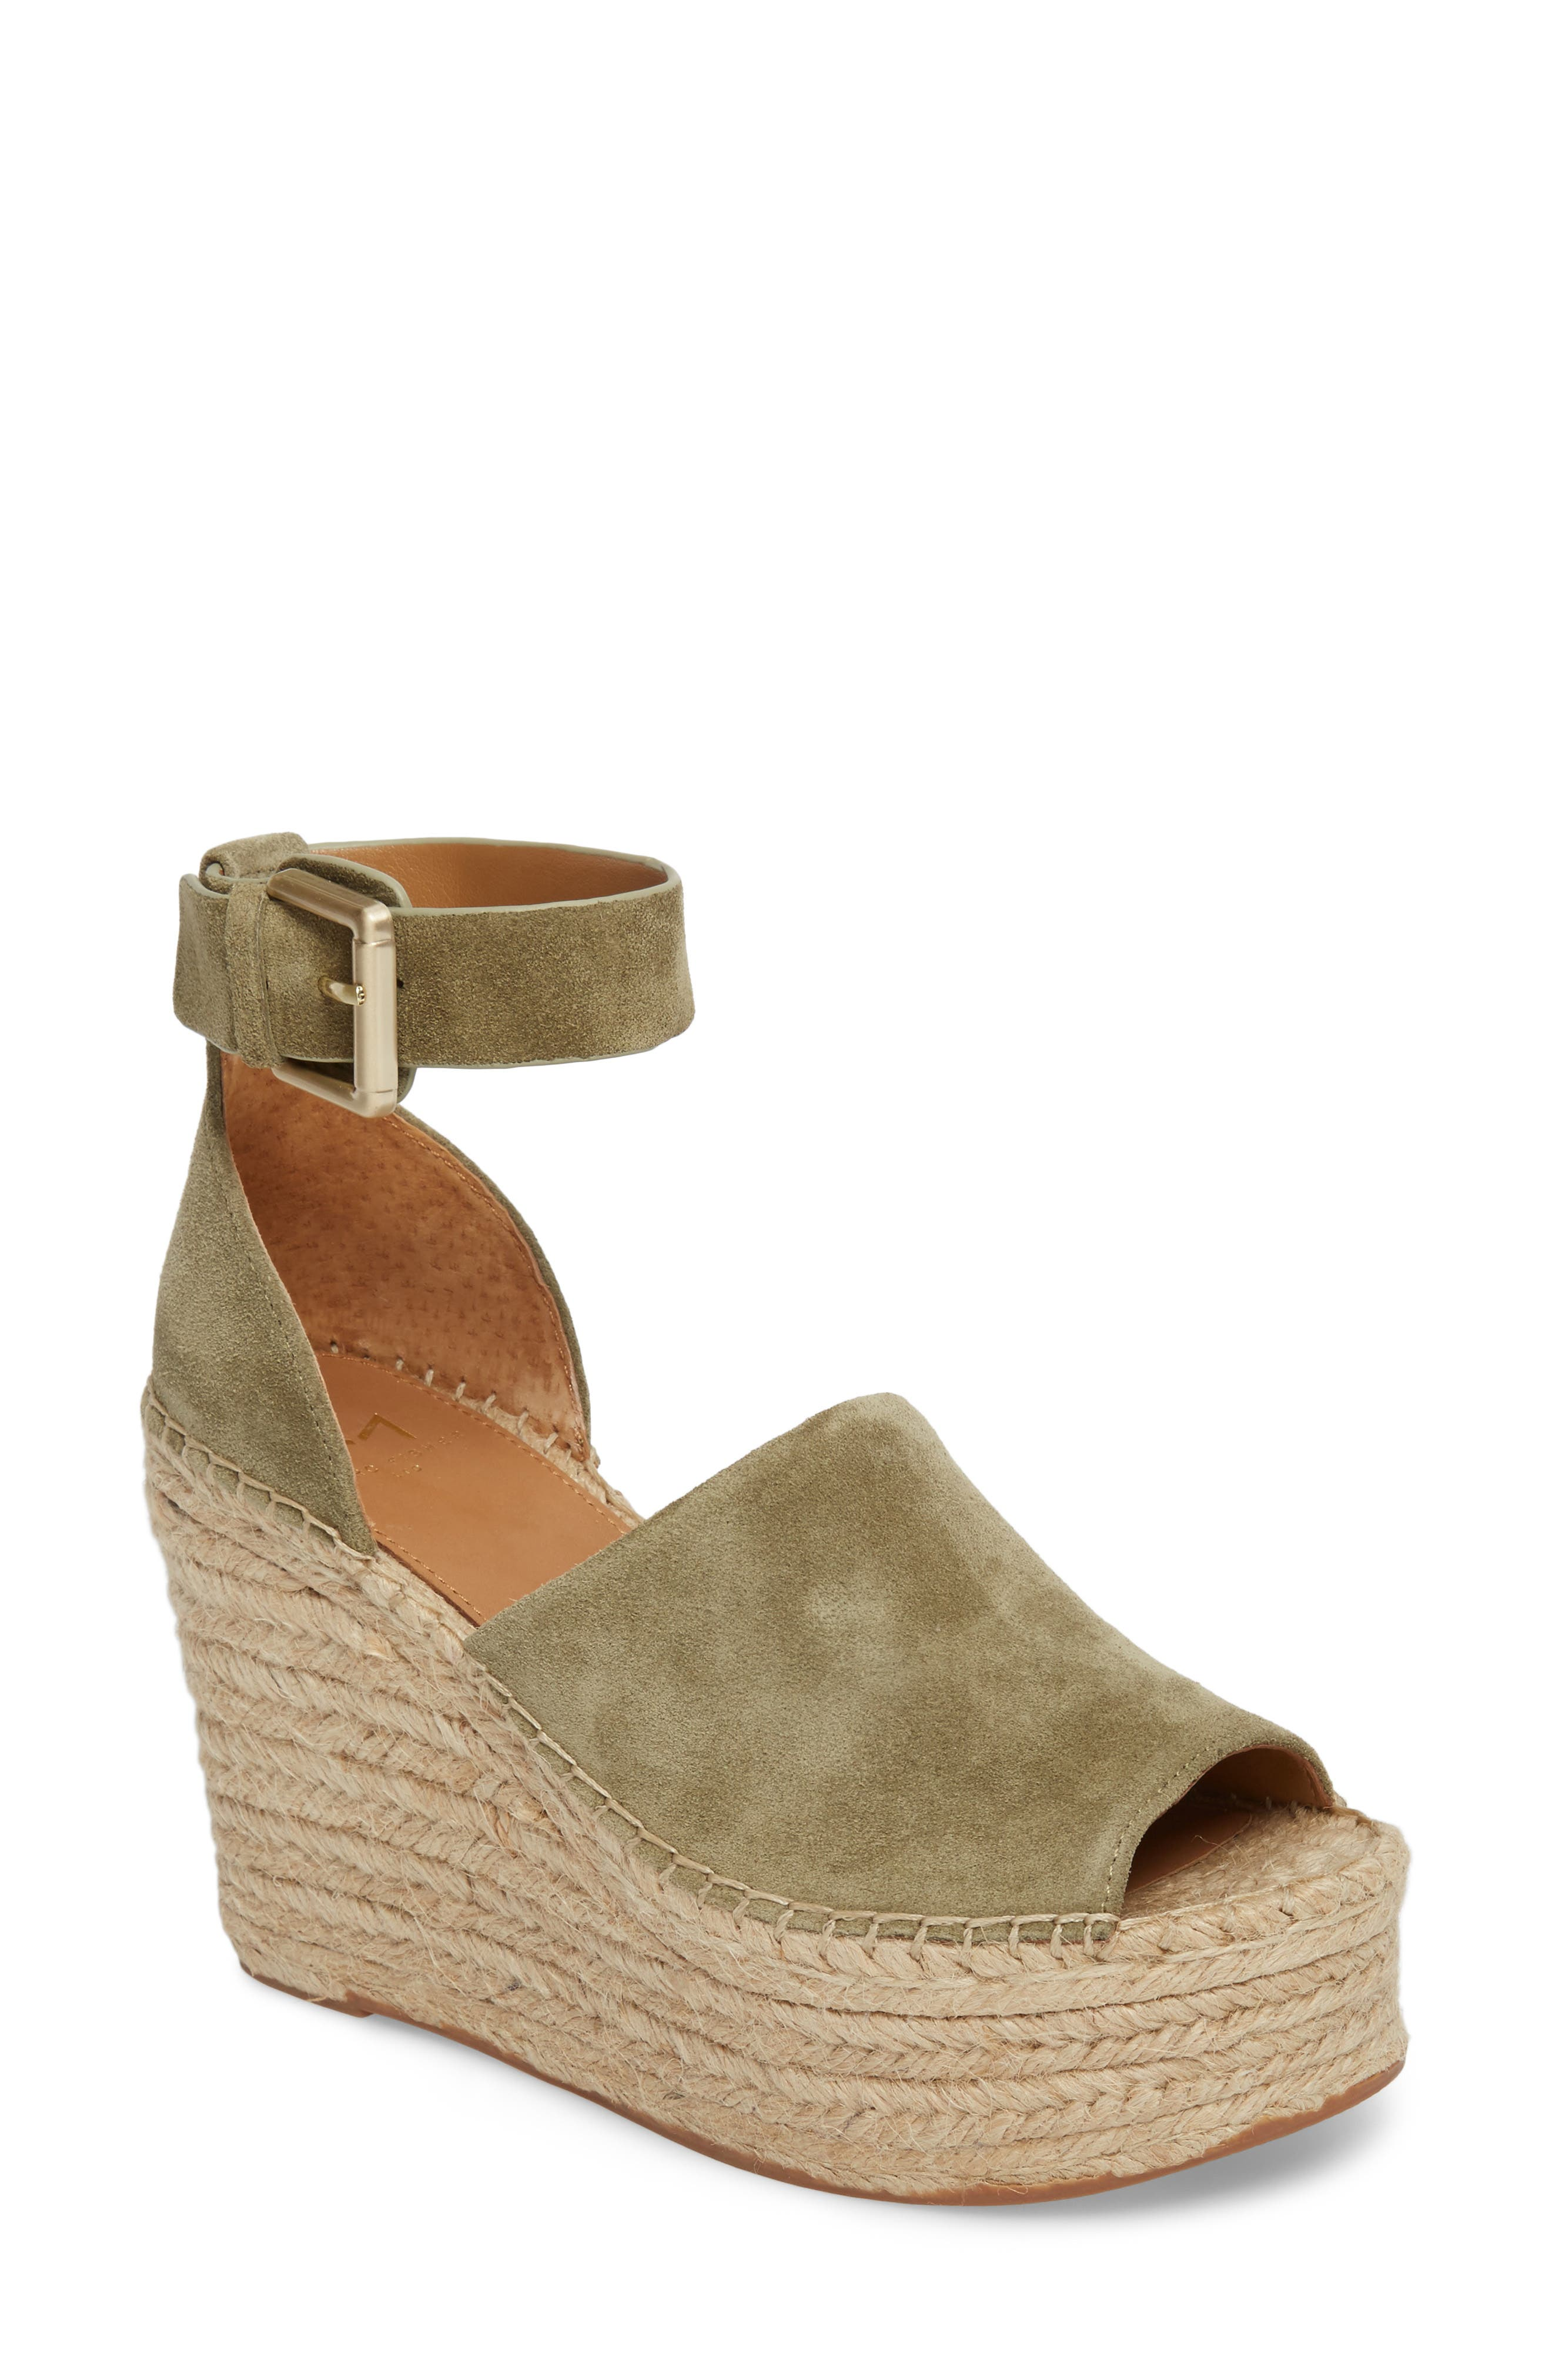 'Adalyn' Espadrille Wedge Sandal,                             Main thumbnail 1, color,                             Light Green Suede